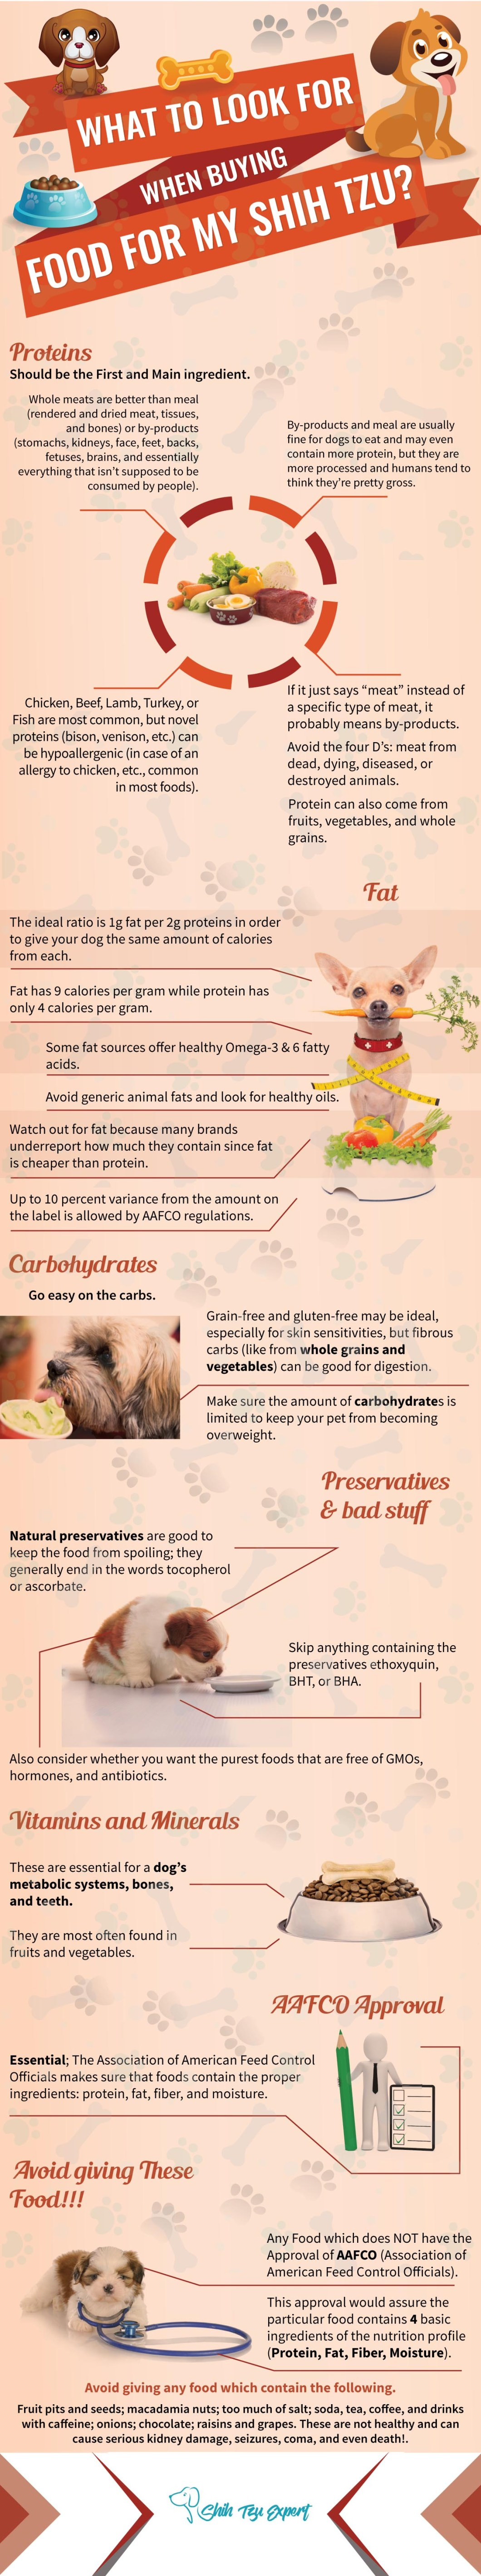 Your Shih Tzu's Diet Plan: What's Important and What to Look For - Infographic